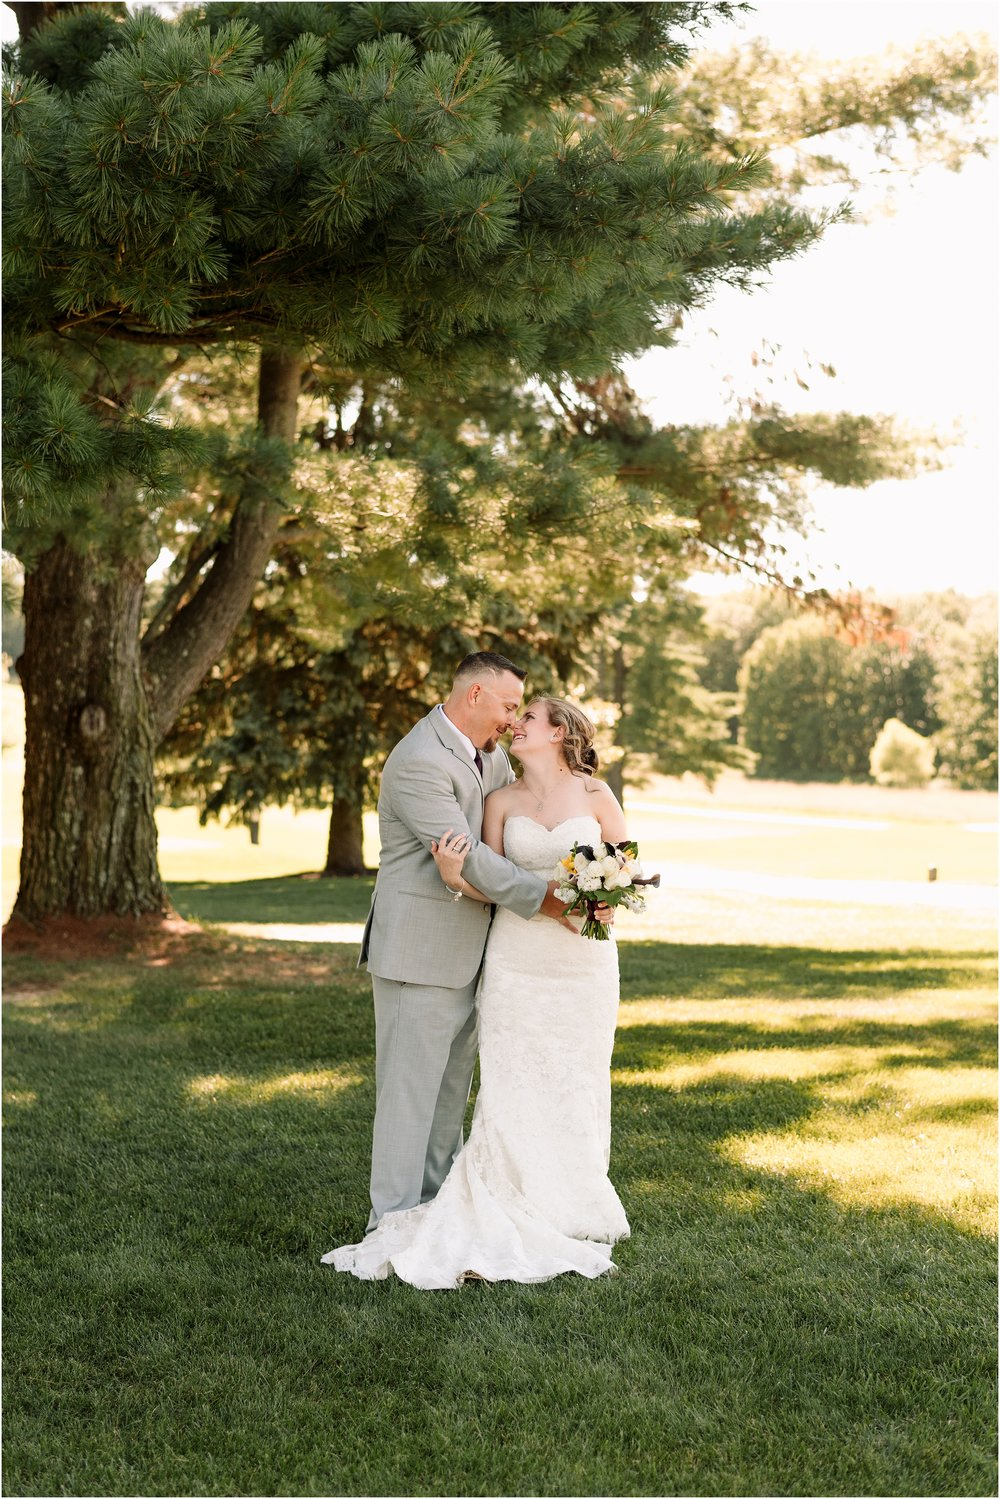 hannah leigh photography Piney Branch Golf Club Wedding Upperco MD_0455.jpg